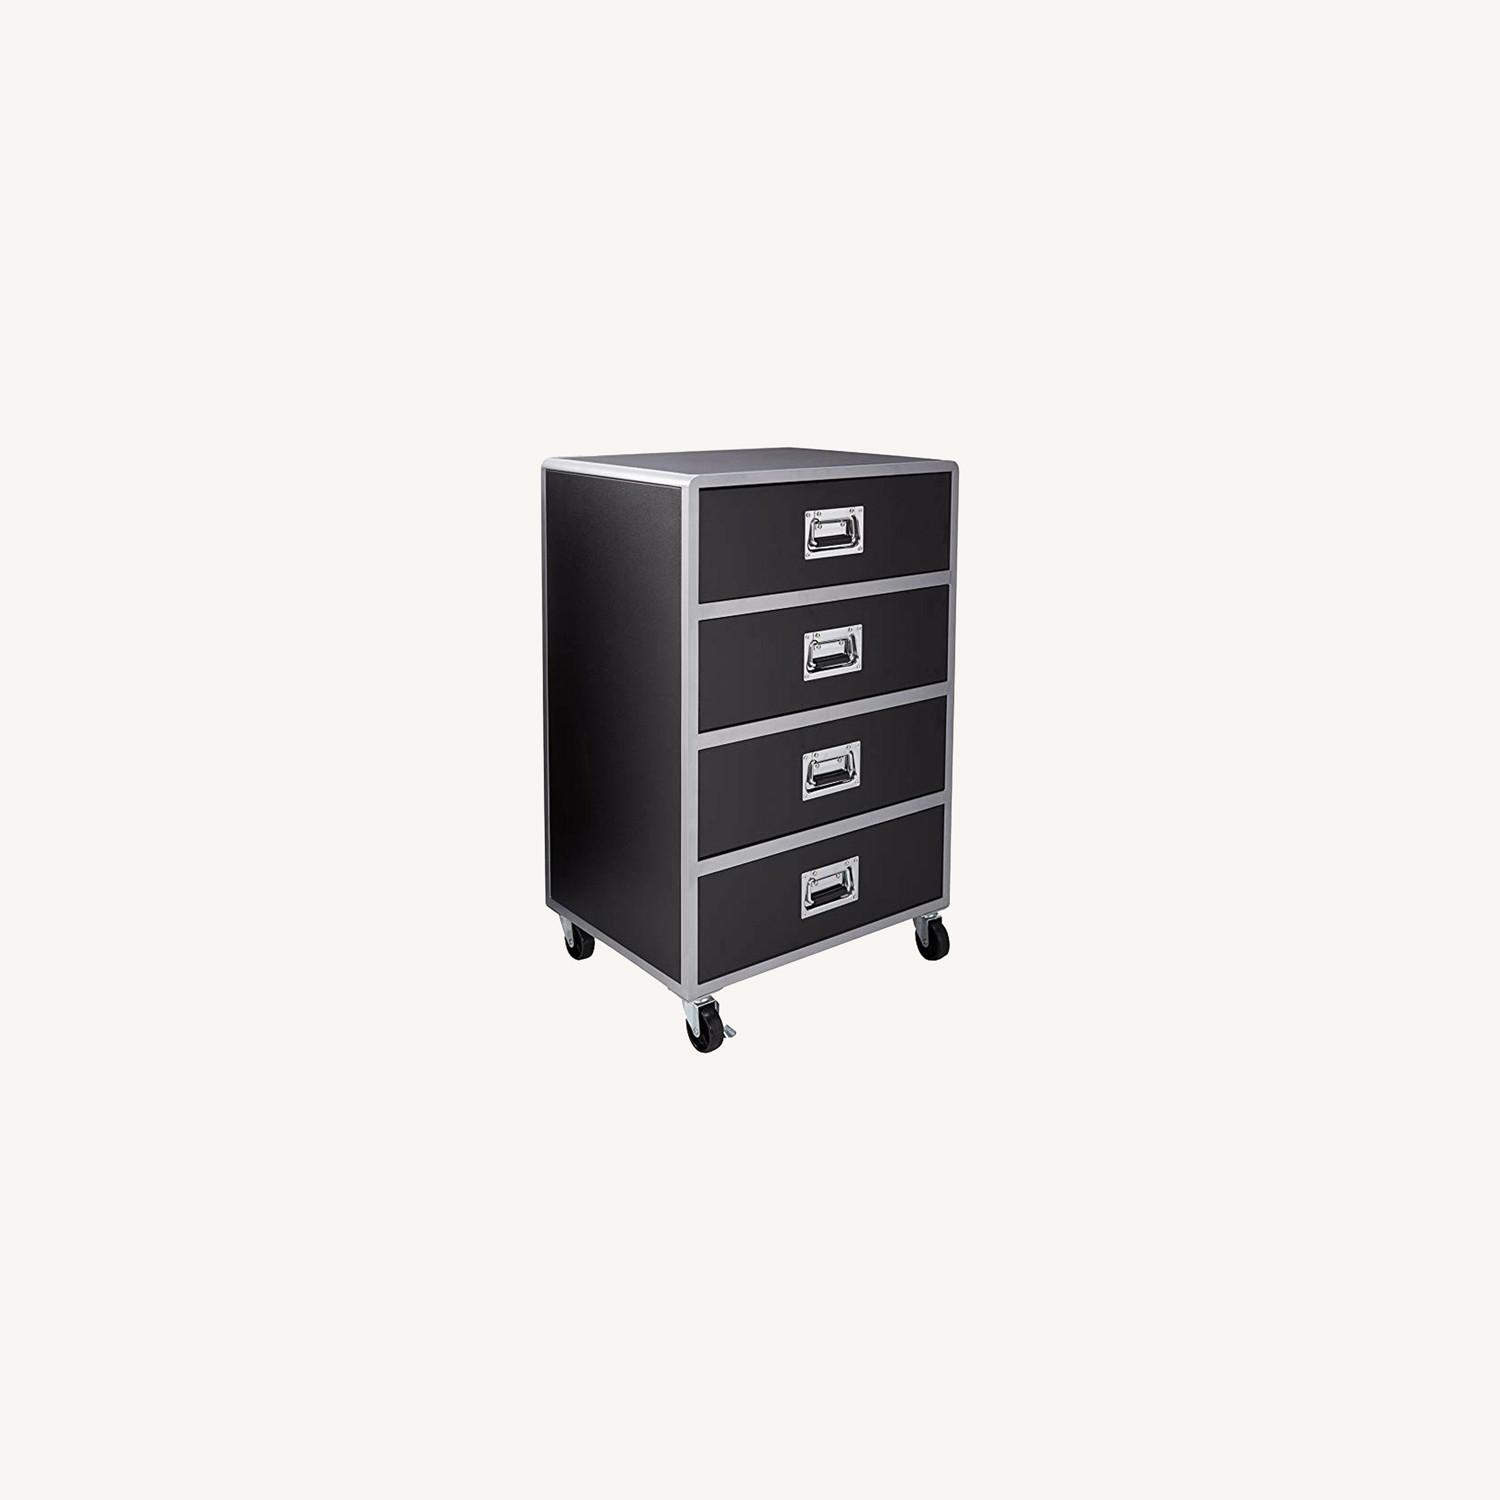 Chest In Black & Silver Finish W/ Lockable Casters - image-6